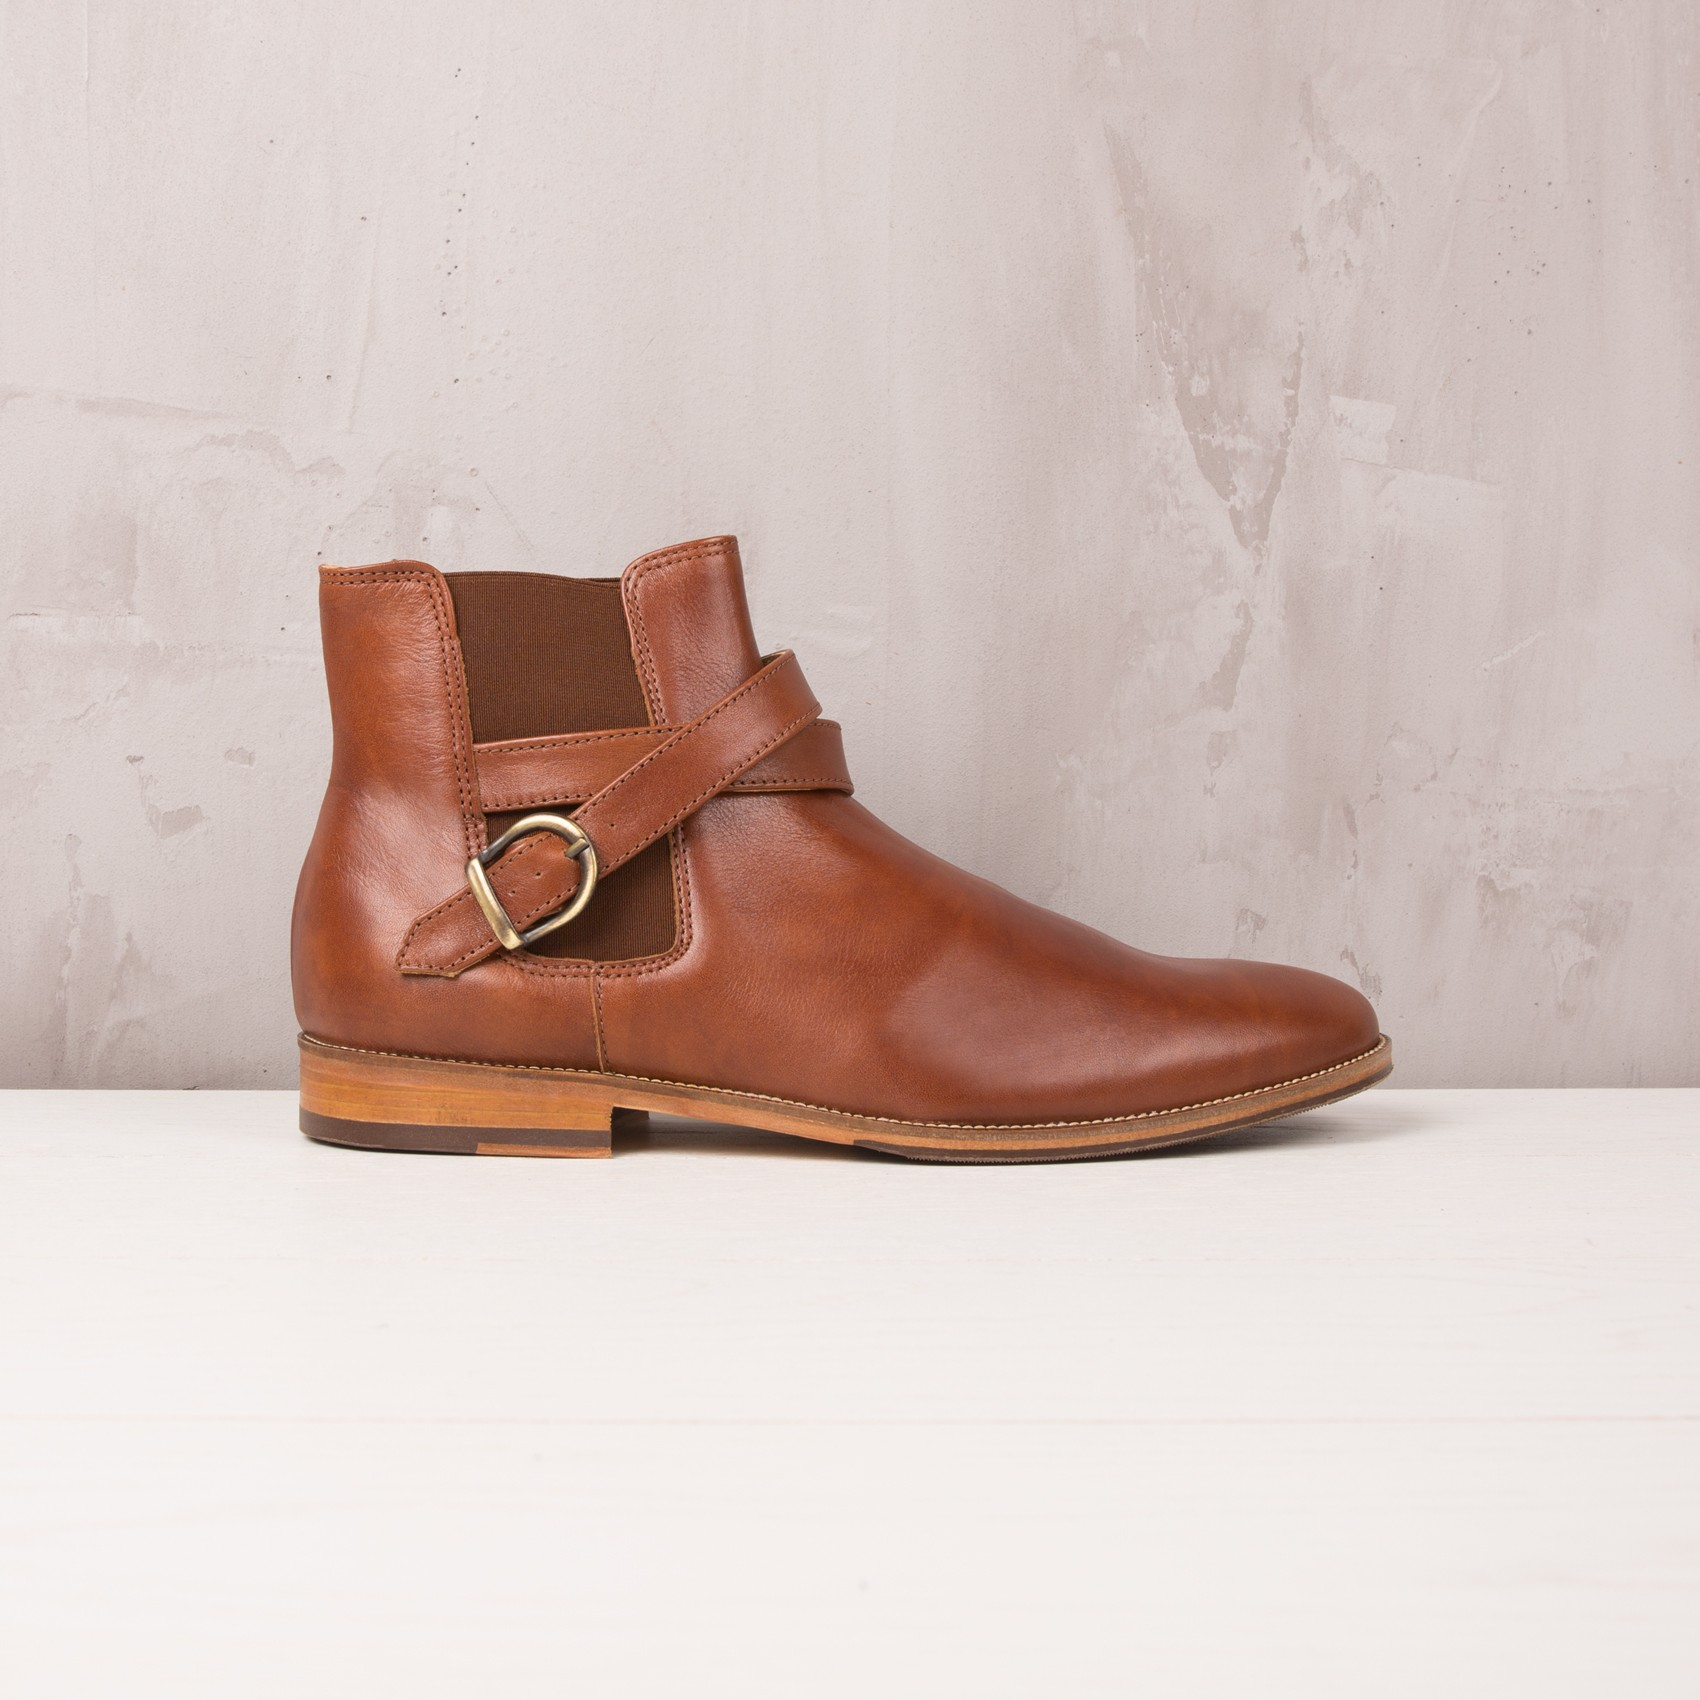 brogues derby shoes chelsea boots lace up boots sneakers loafers. Black Bedroom Furniture Sets. Home Design Ideas